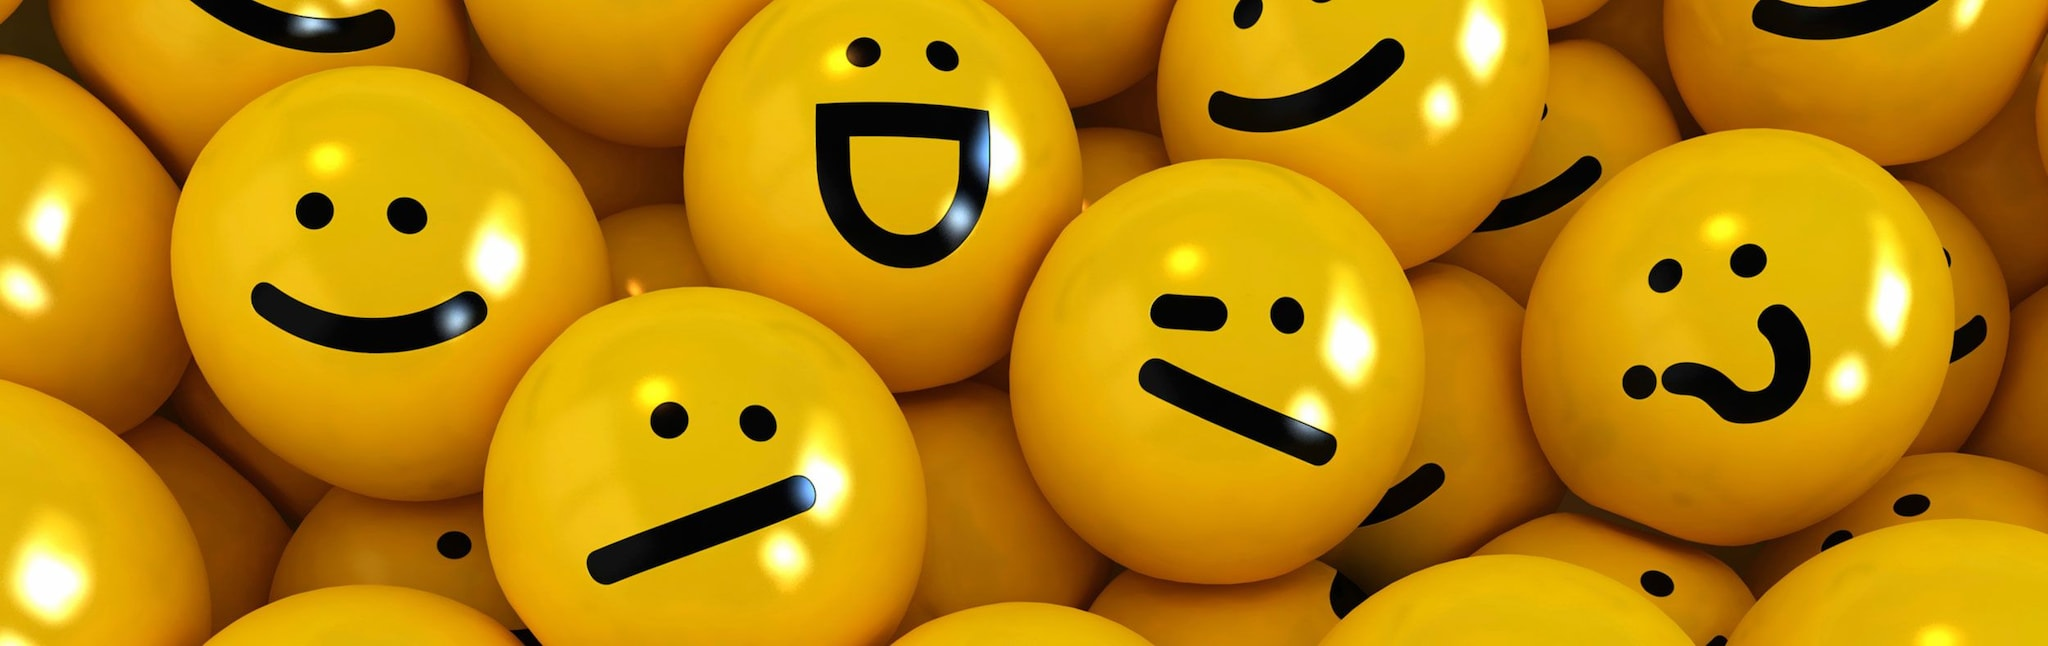 Business Emojis: The Online Shorthand More Marketers Are Embracing